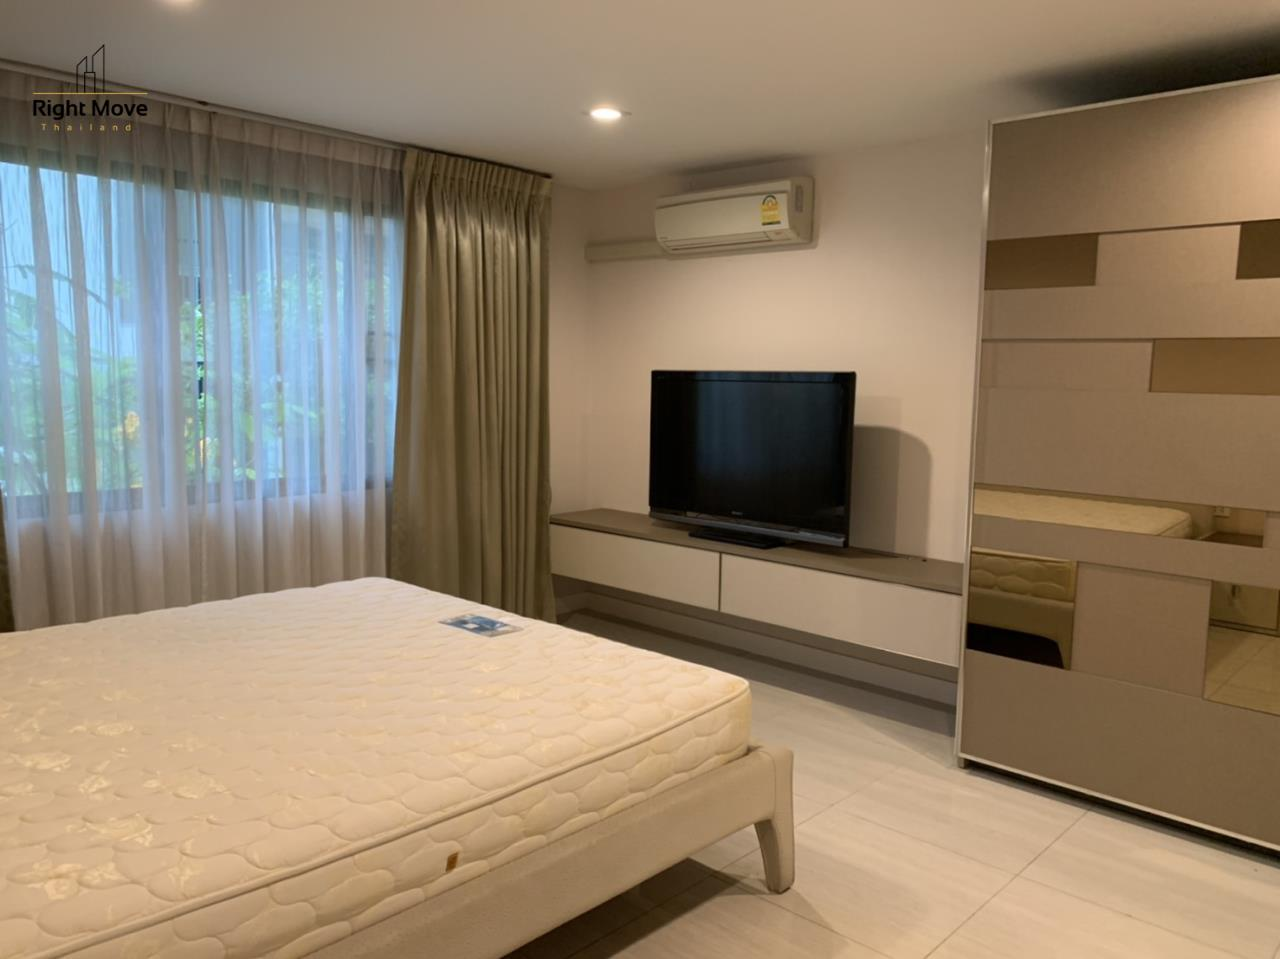 Right Move Thailand Agency's CA7083 Beverly Hills Mansion For Rent 43,000 THB 2 Bedrooms 133.95 11